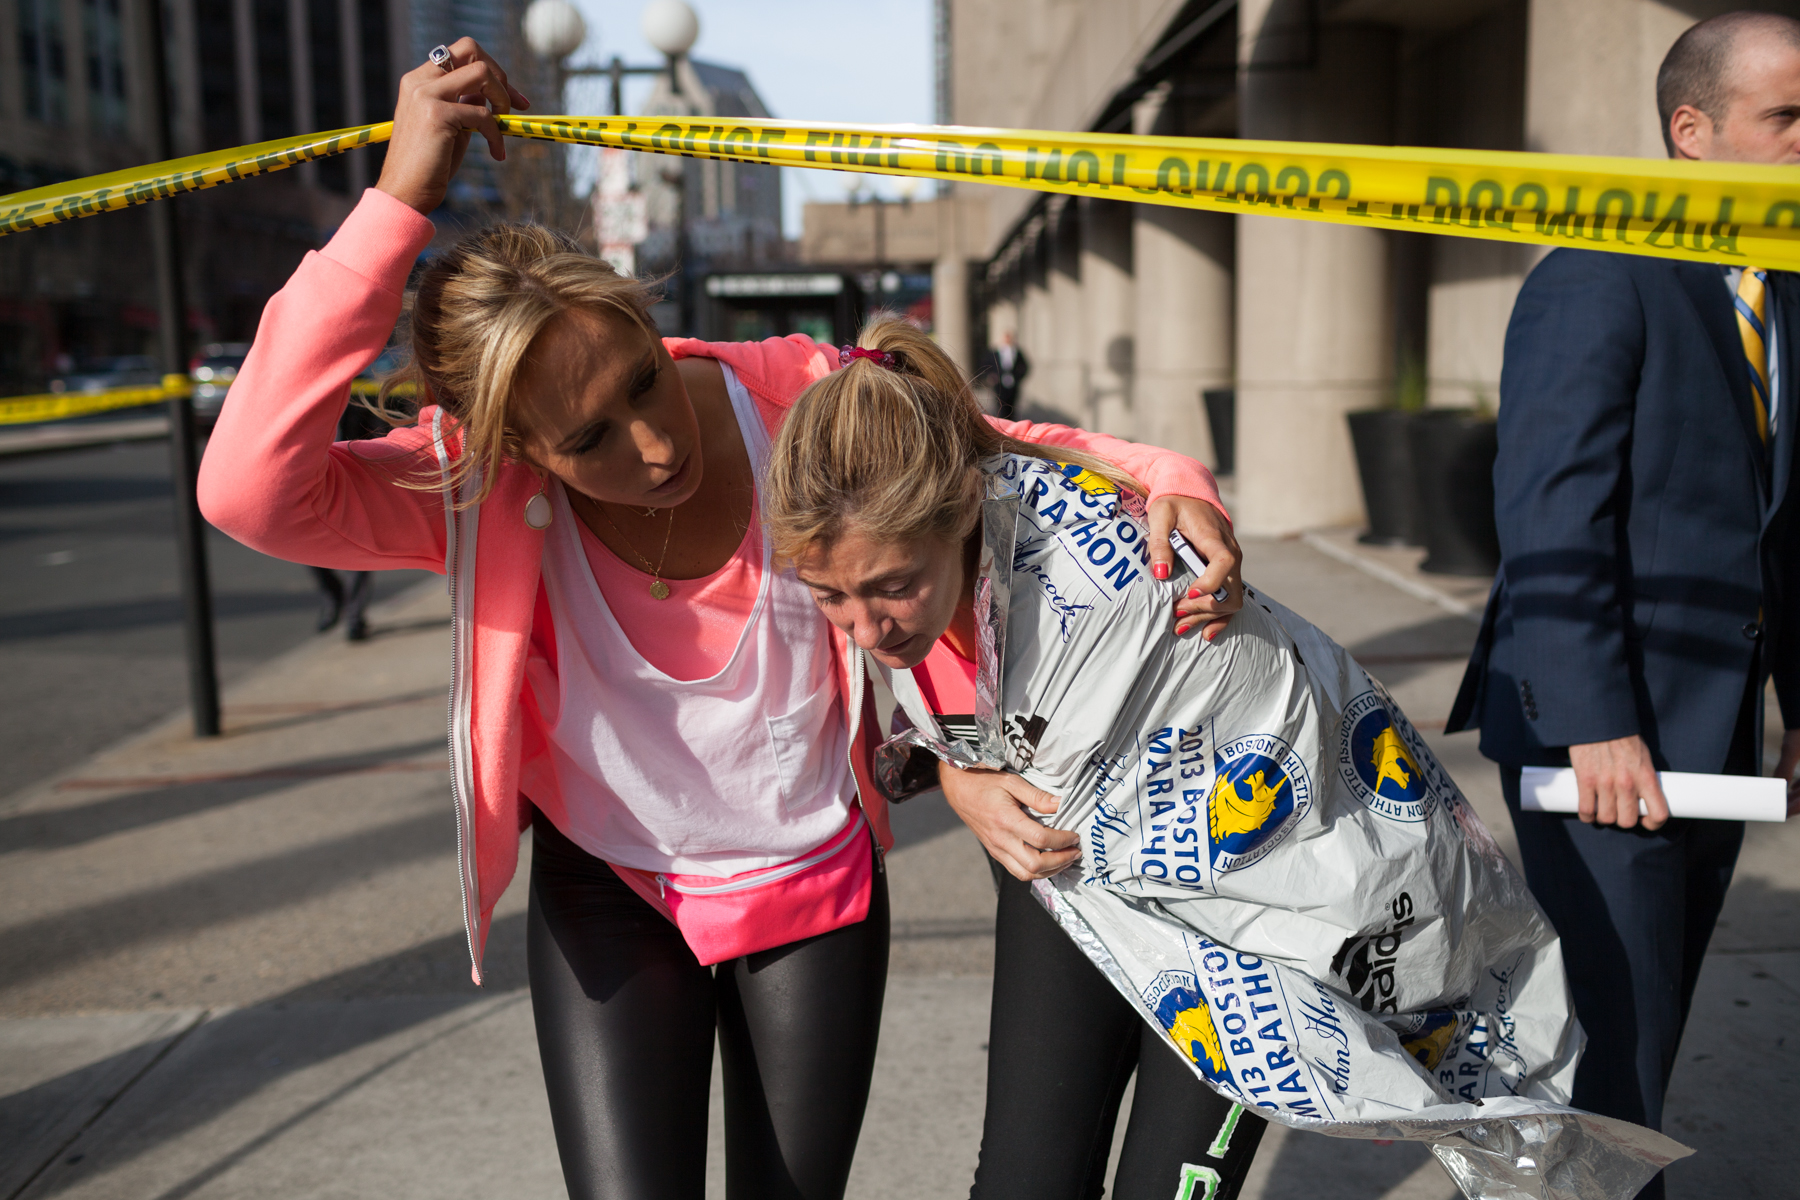 nick dinatale_boston marathon bombing-5.jpg